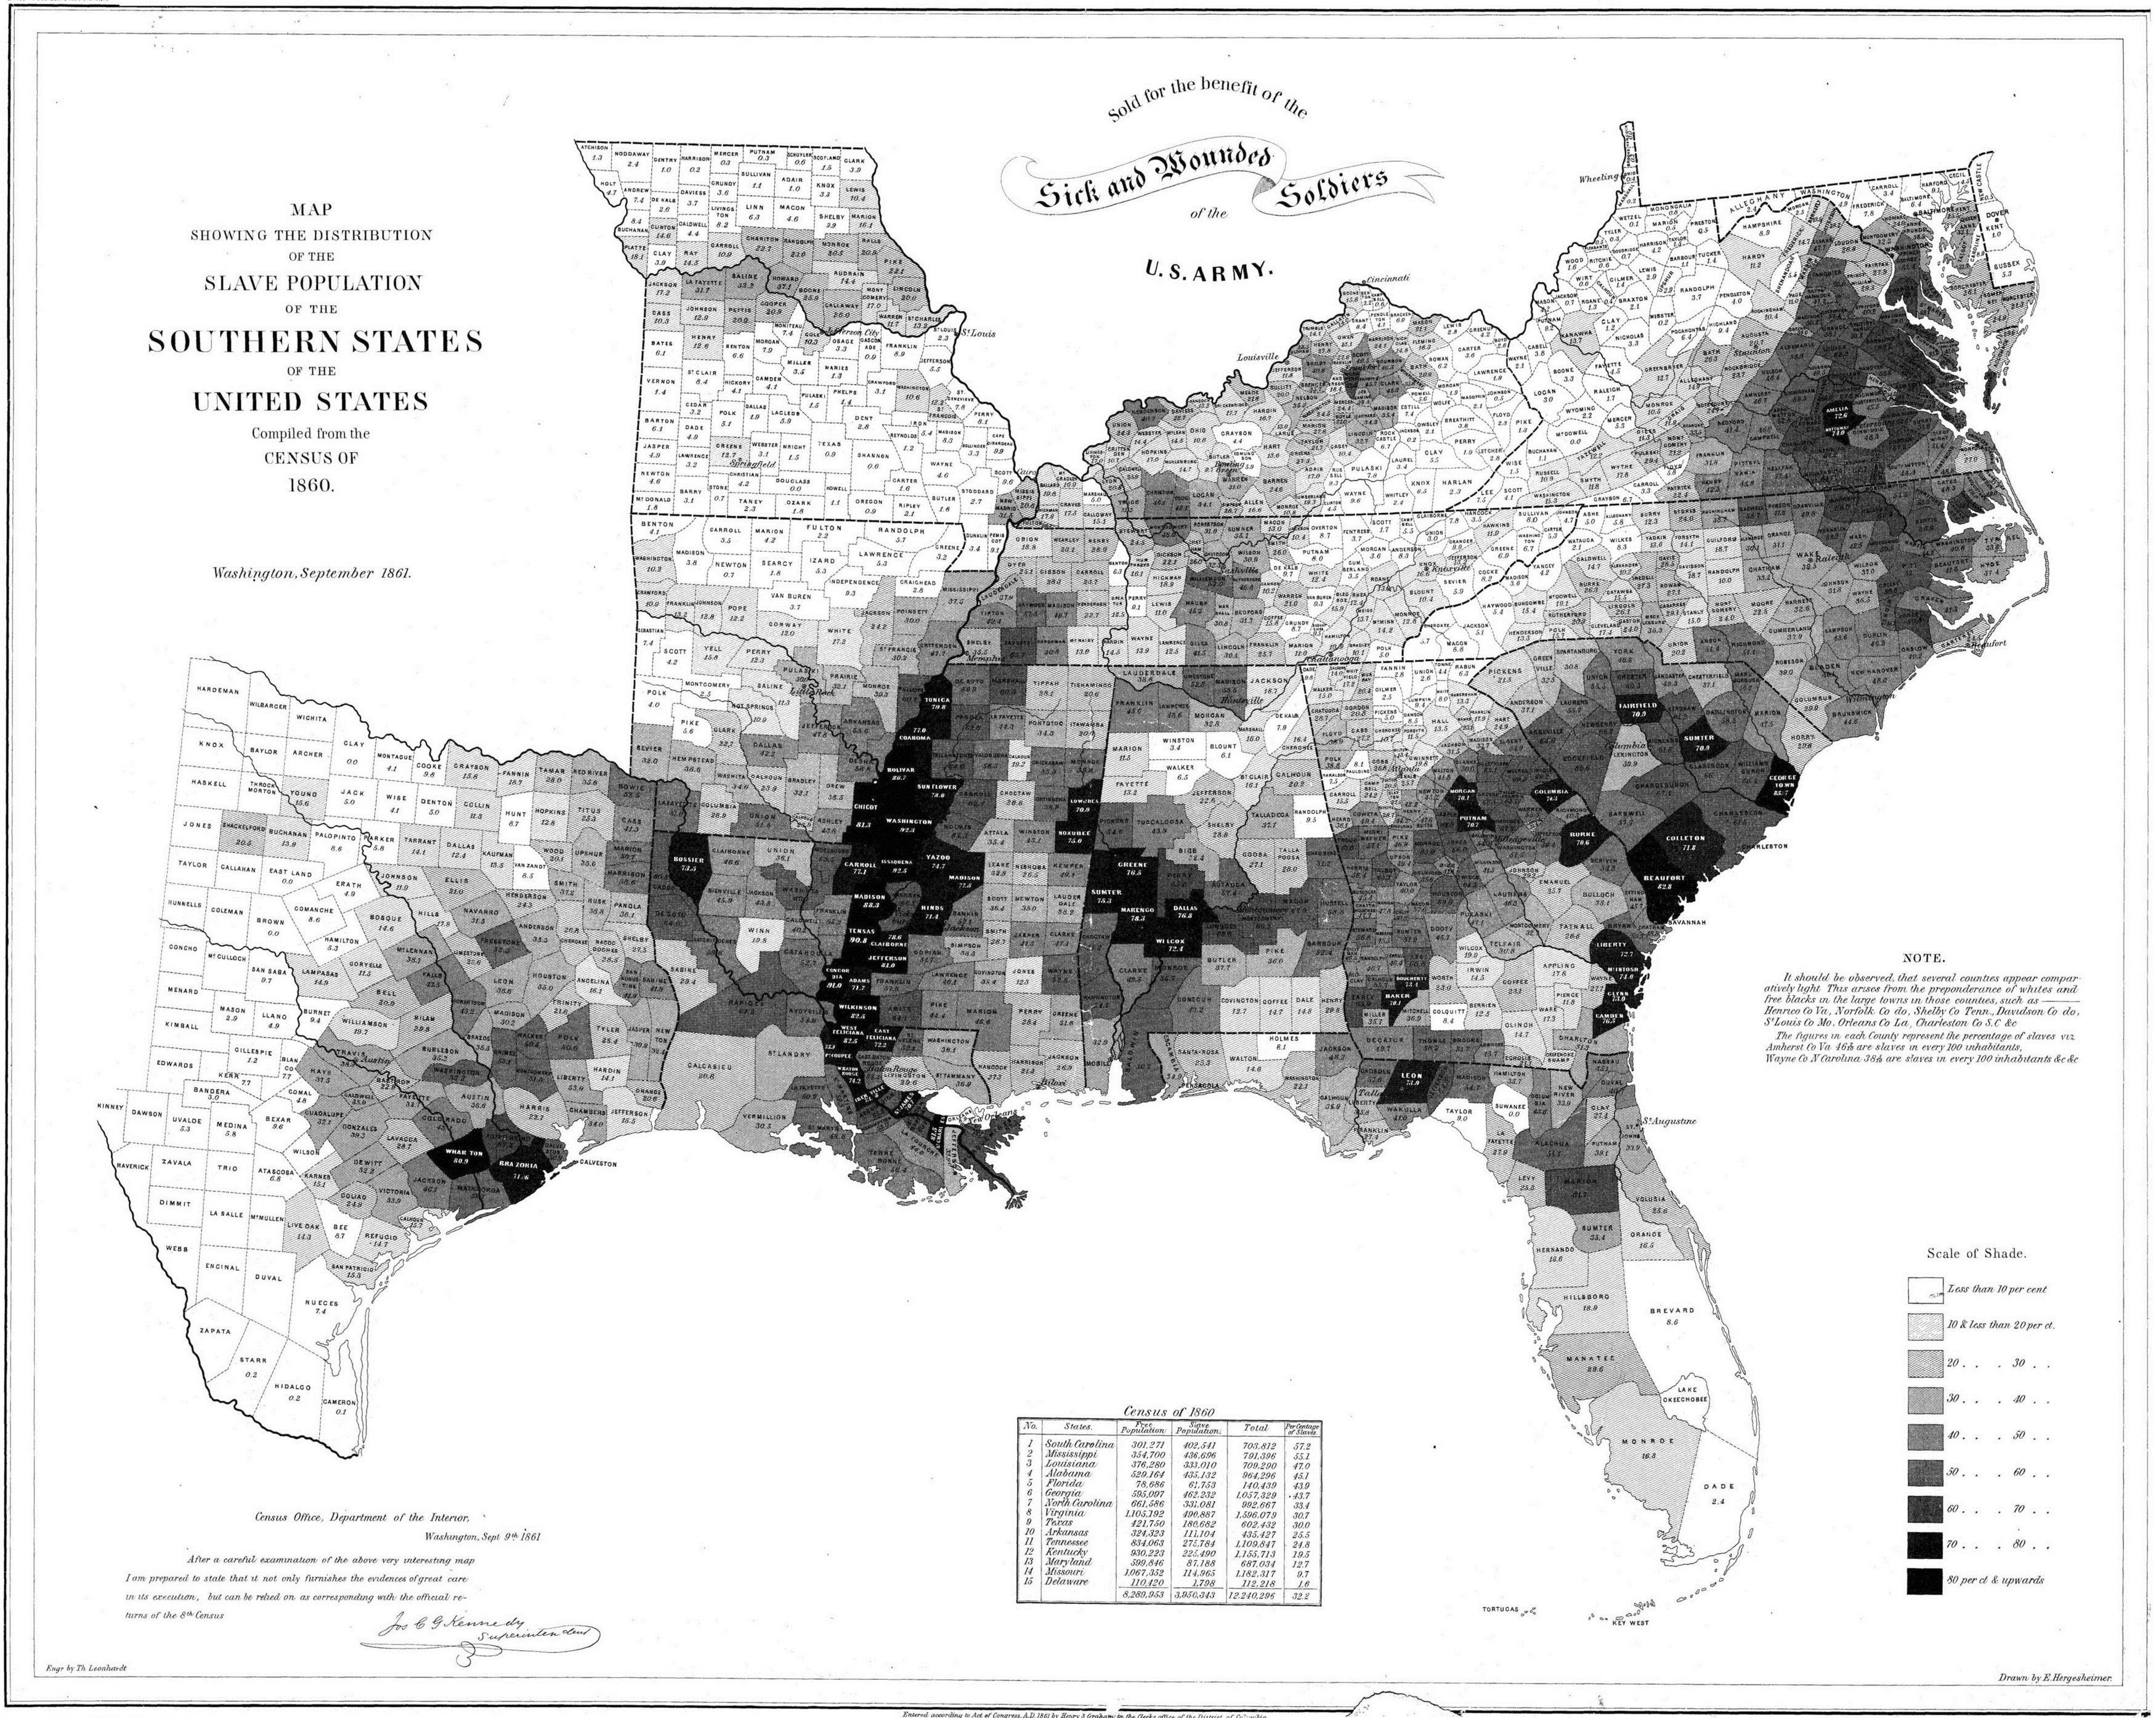 Enslaved population of the Southern States of